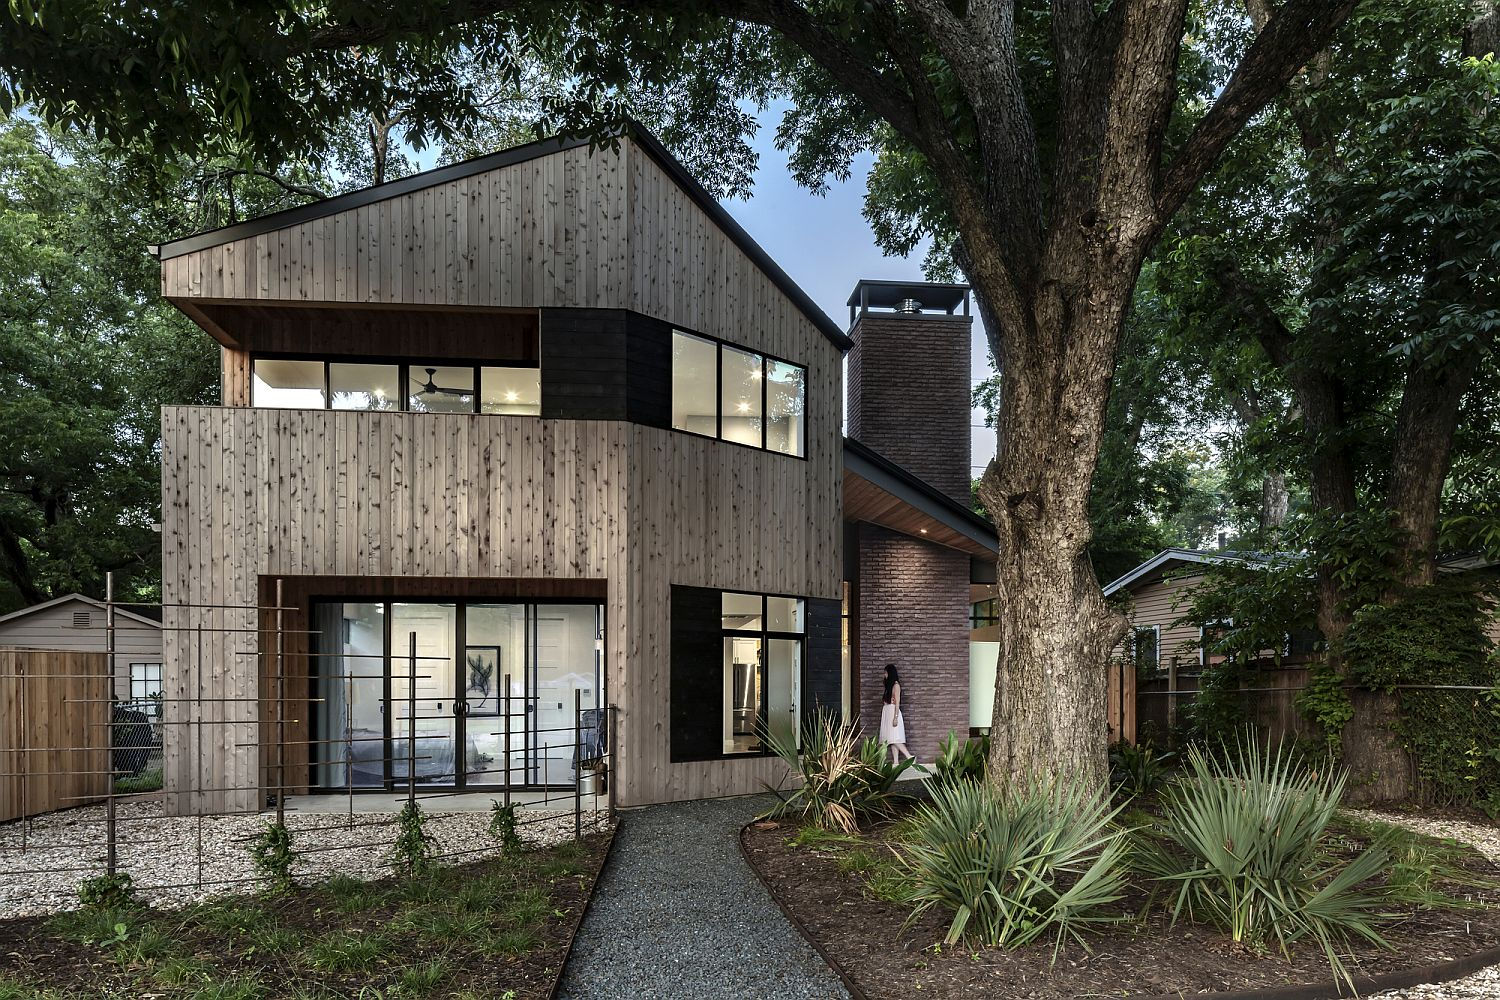 Modern Hewn House combines vacation home appeal with contemporary ergonomics